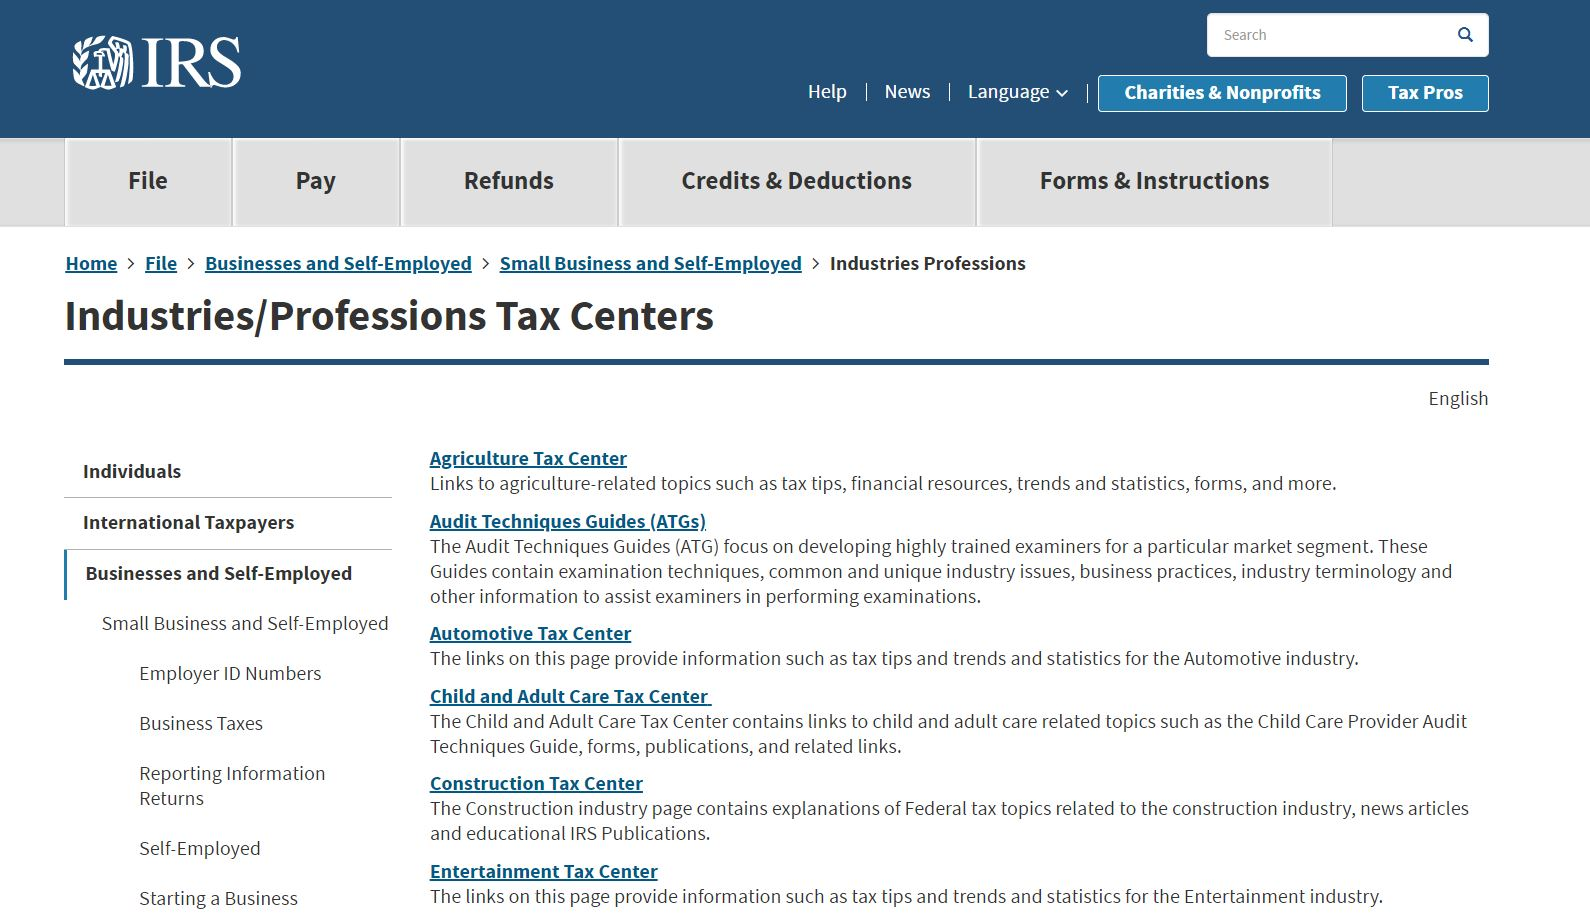 IRS Industries/Professions Tax Centers page